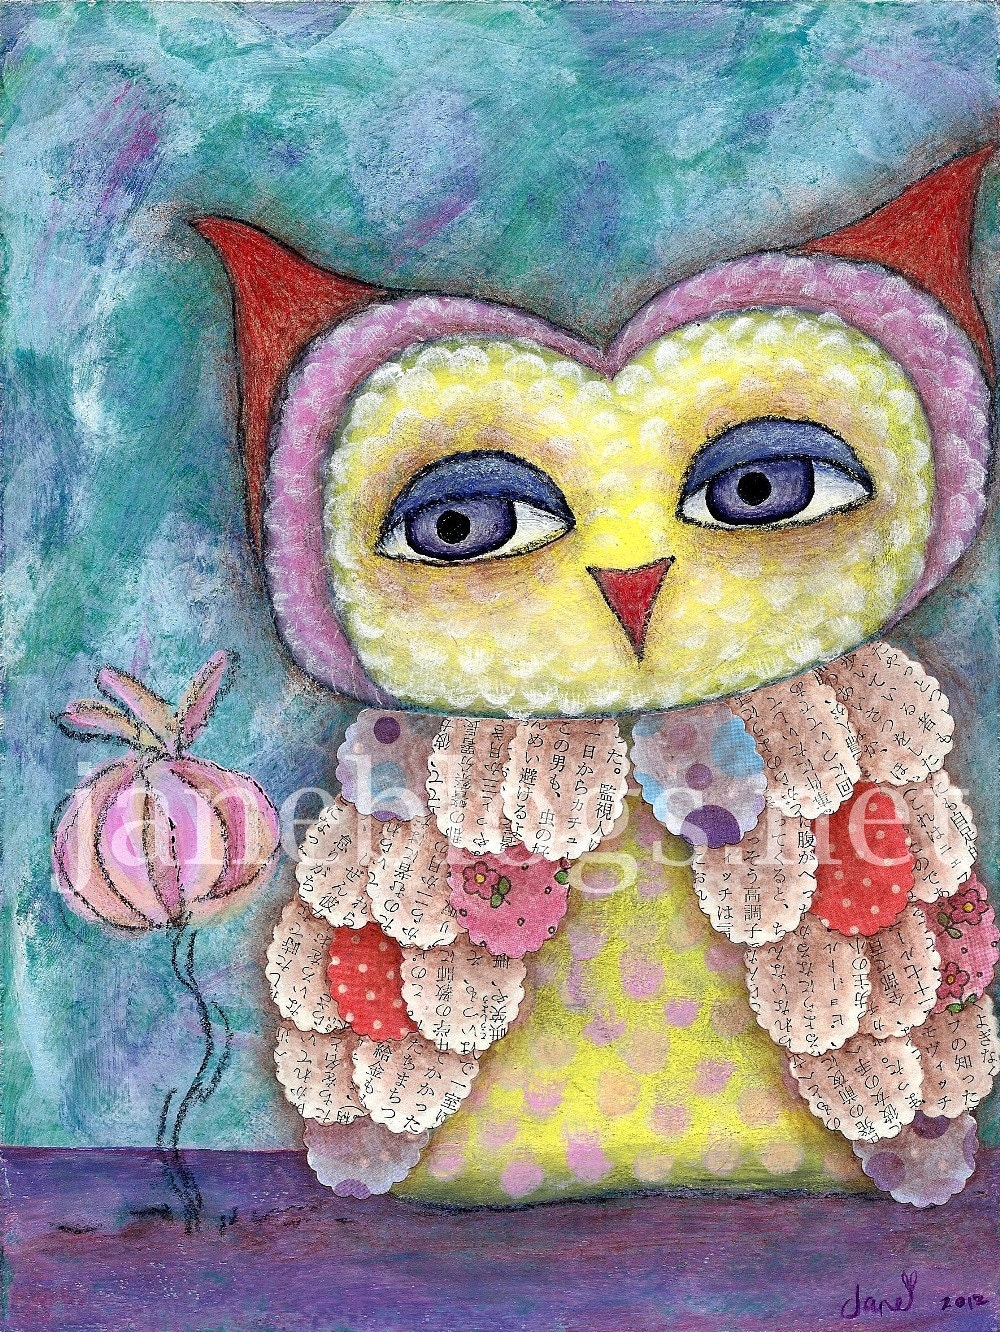 "Original Mixed Media Owl Painting - ""Whoo's a Sweetie"" - 8x6 inch - whimsical big eye art - painting on wood panel, mdf - JaneBlogsArt"